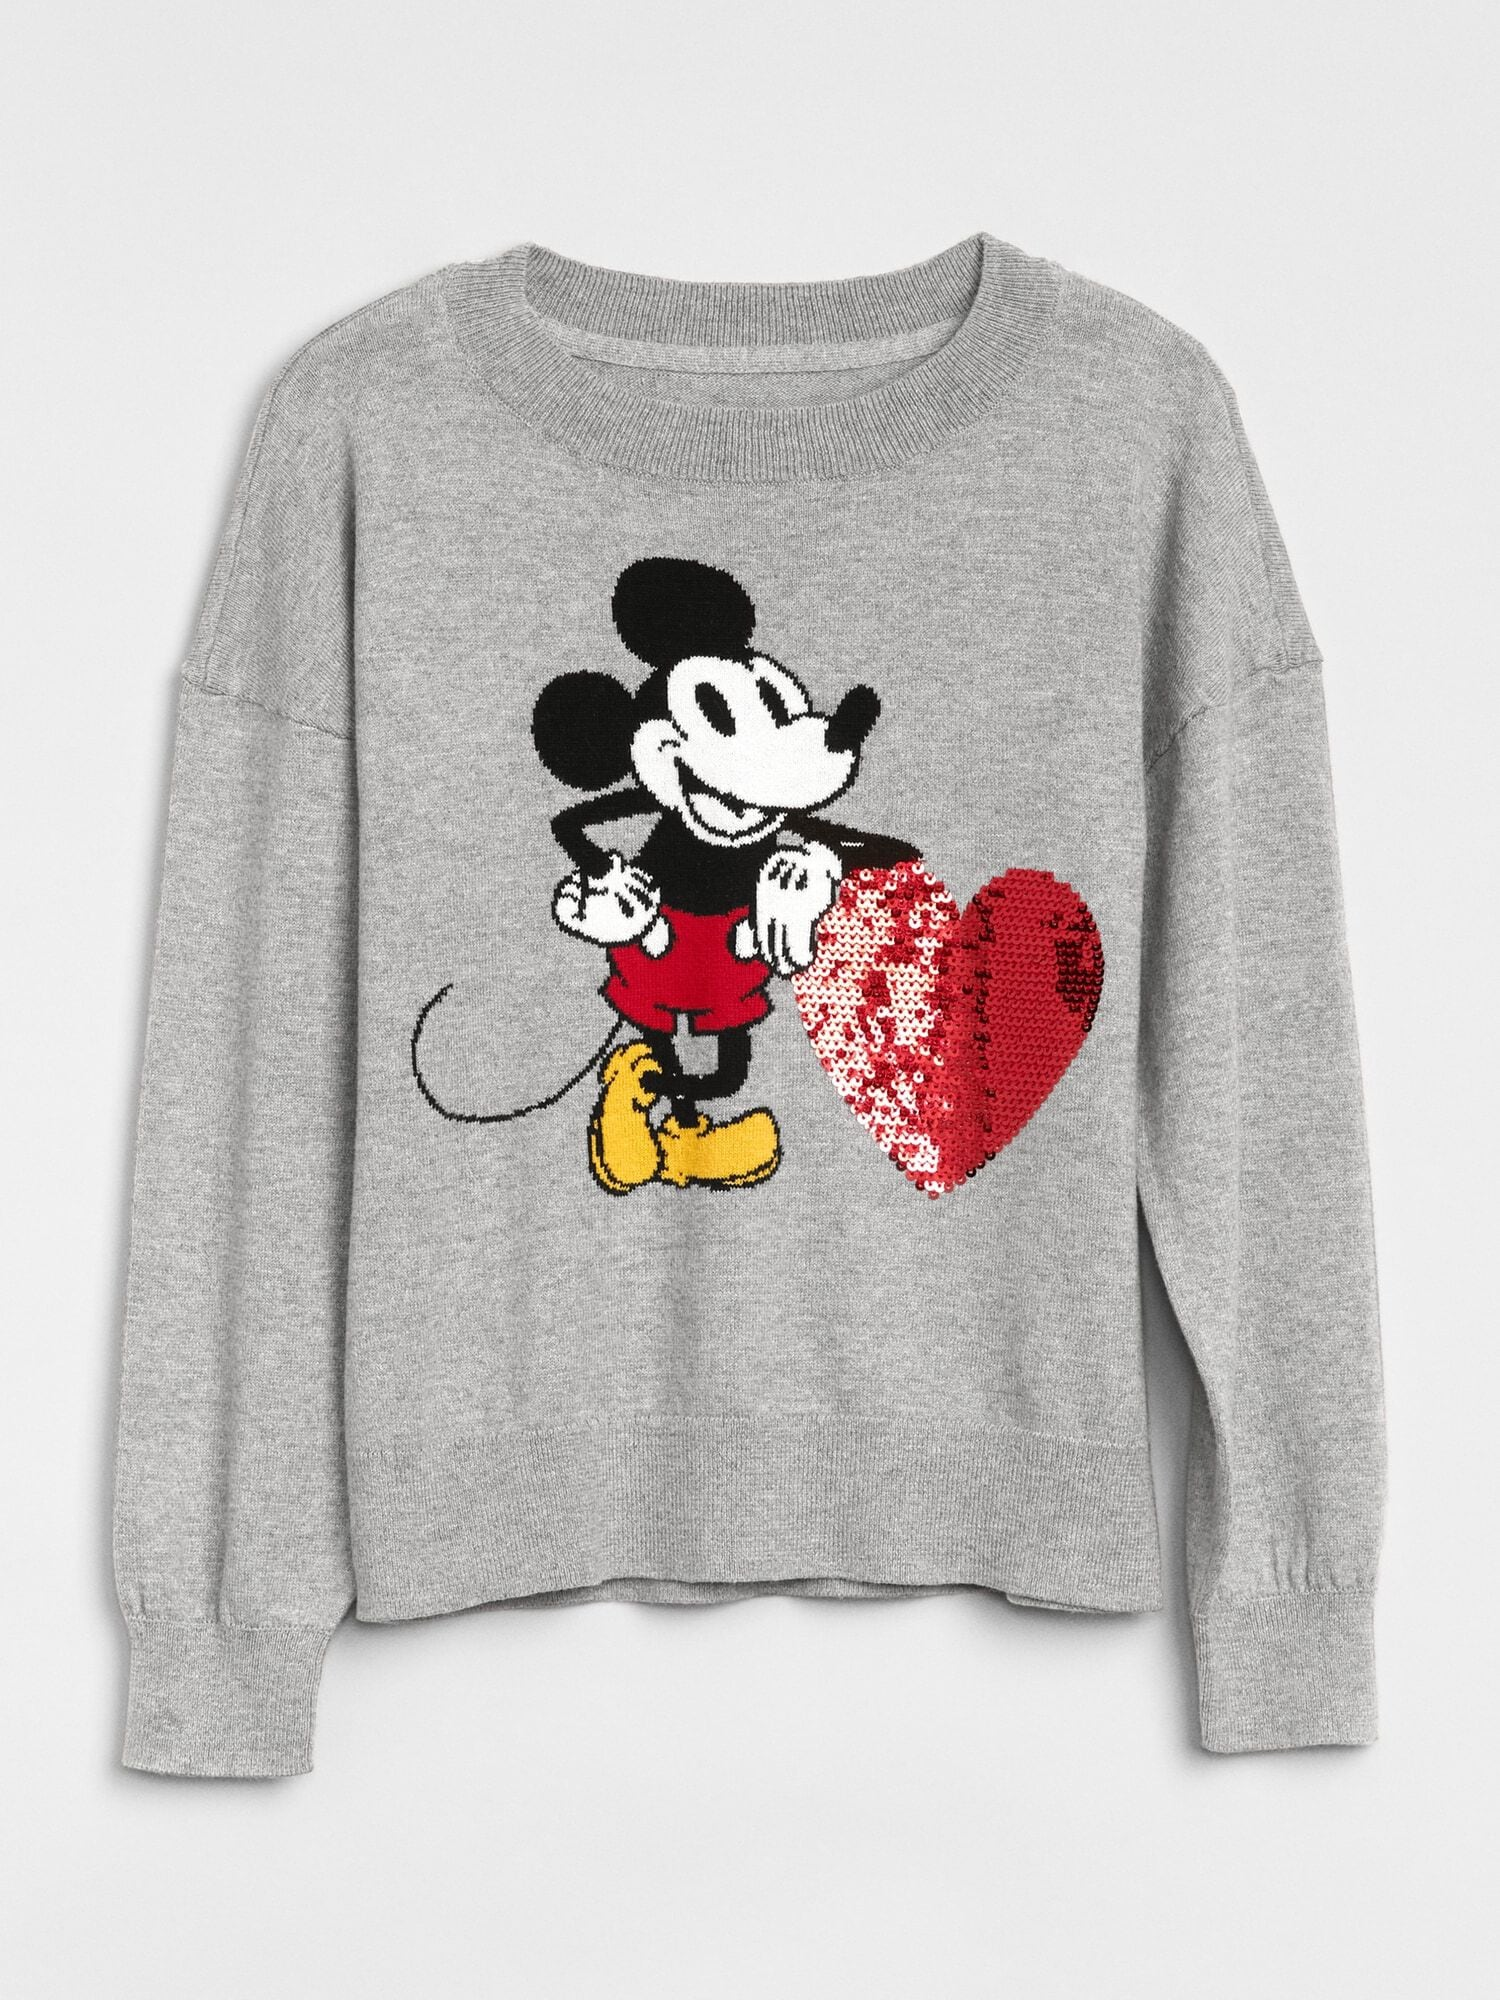 d8923d4a GapKids | Disney Mickey Mouse Sweater | Gap® UK